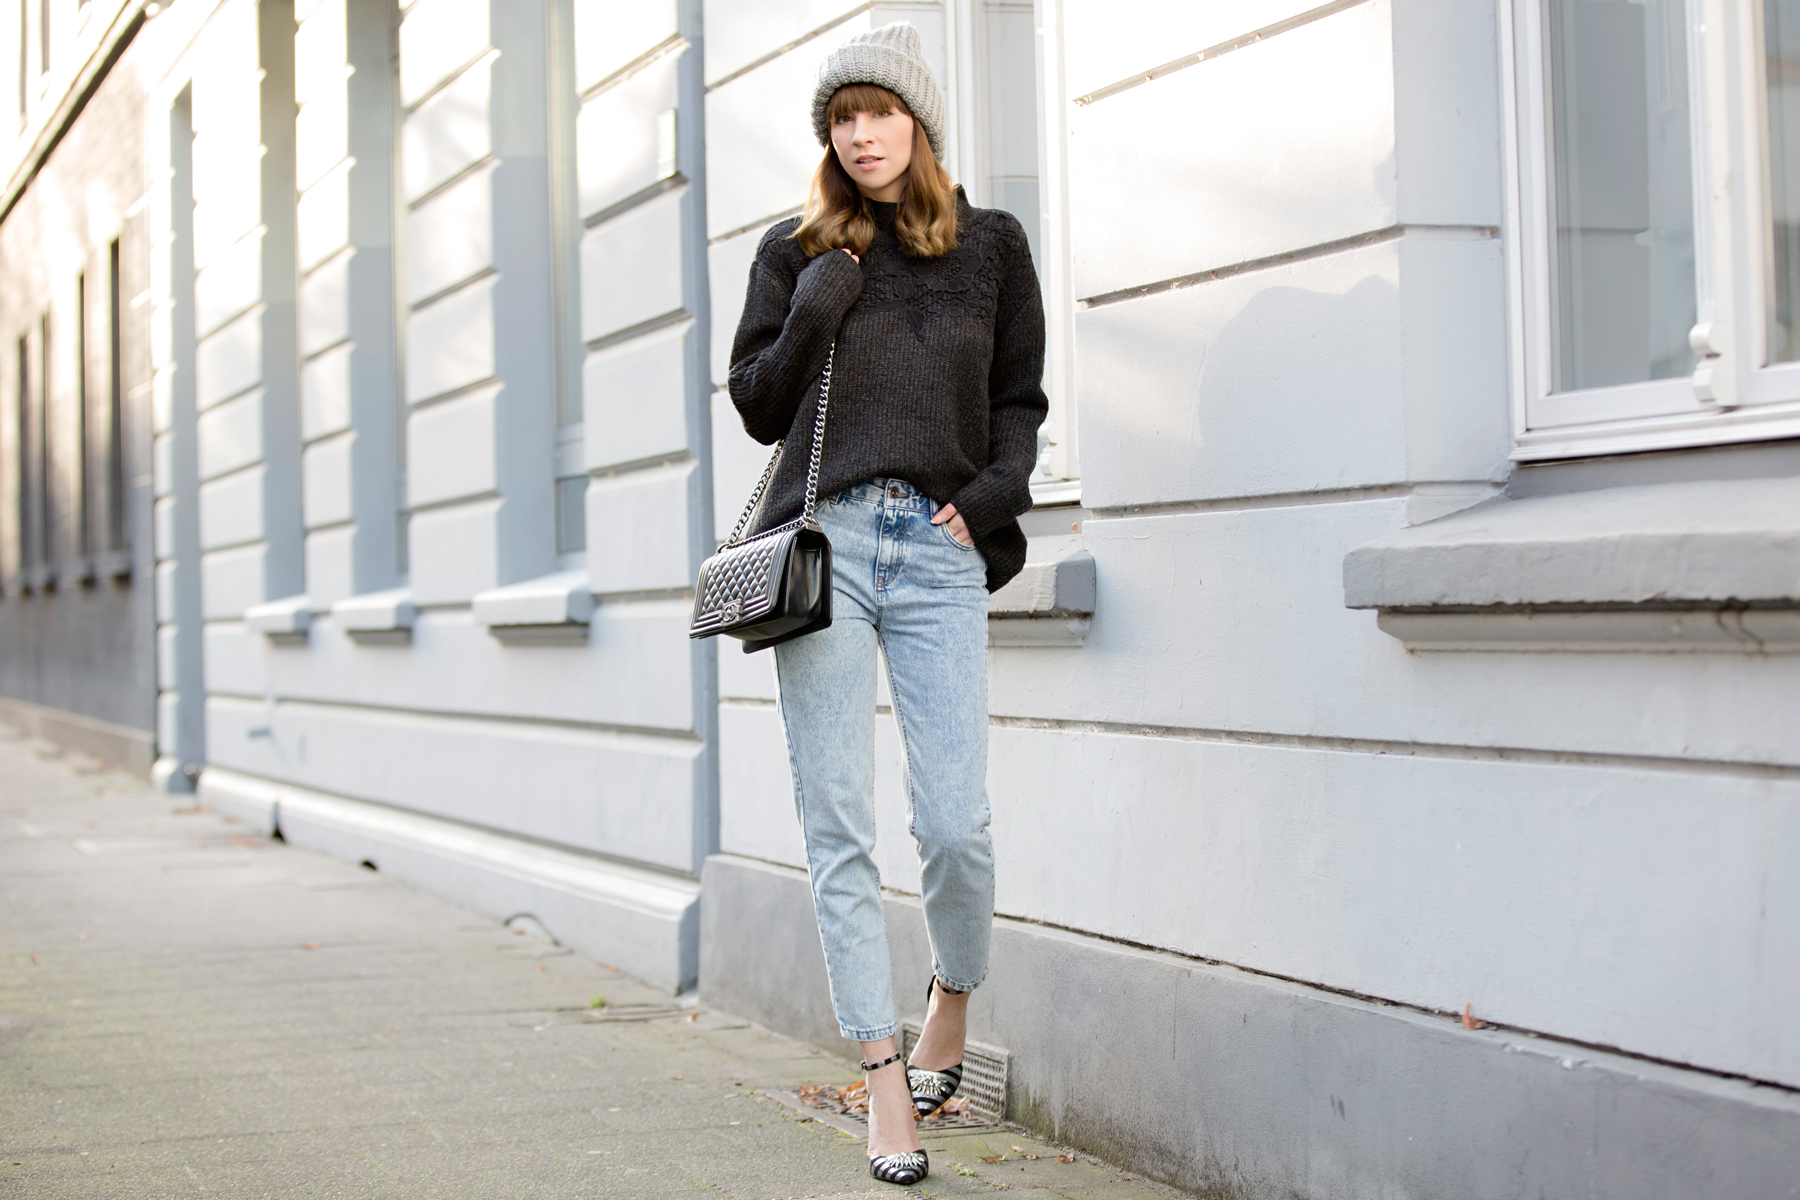 ootd outfit styling mom jeans momjeans pull&bear grey knit knitwear lace chanel chanel boybag leboy asos striped high heels glamour look relax cozy winter düsseldorf cats & dogs blog ricarda schernus fashionblogger 1